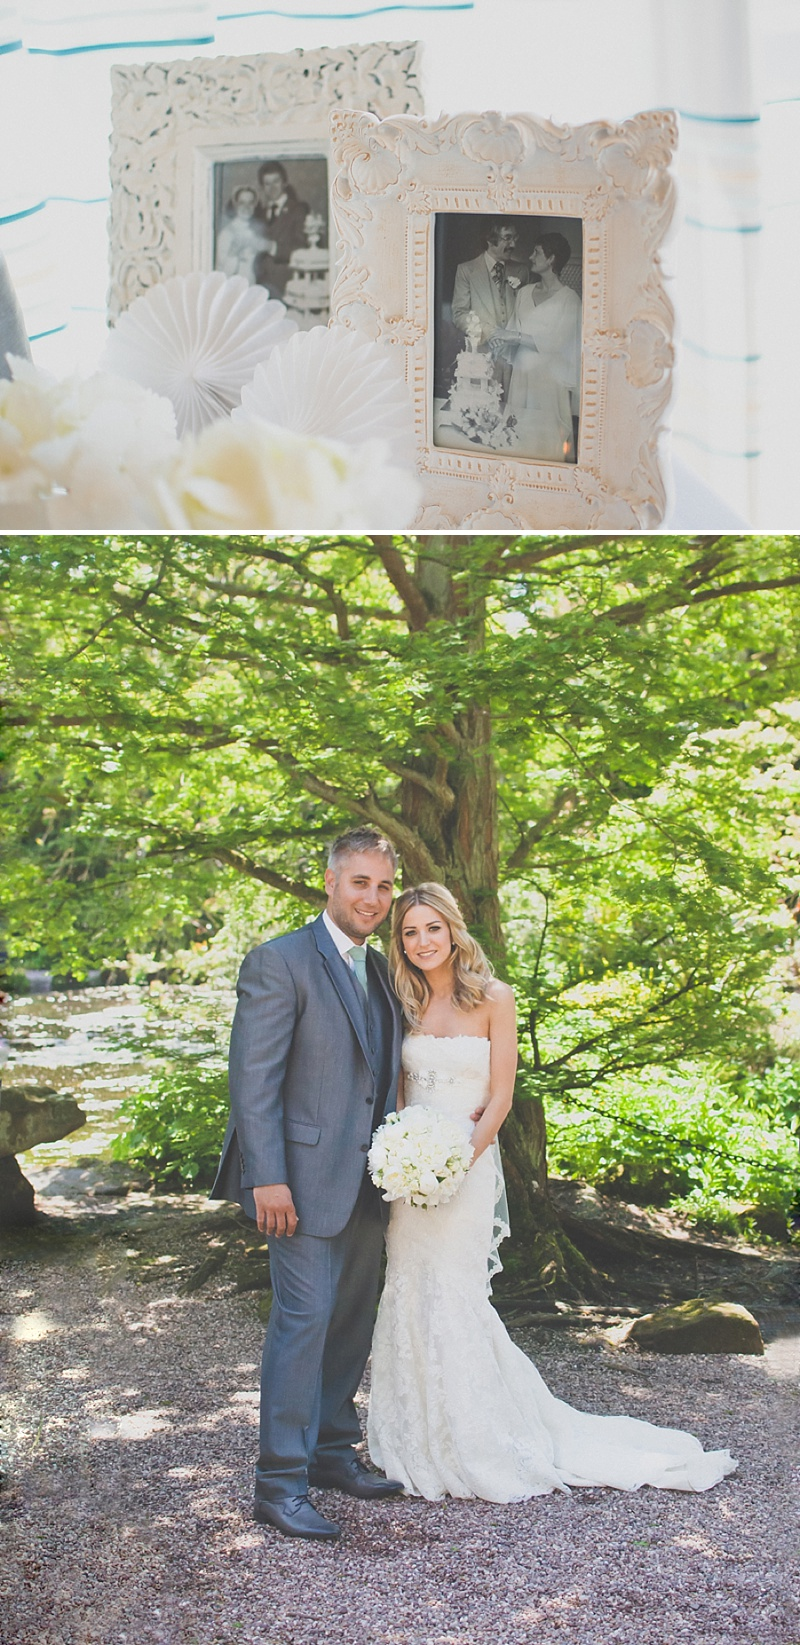 An Elegant White Themed Wedding At The Ness Botanic Gardens With Bride In Champagne From Blue By Enzoani With Aldo Corinne Shoes Images By Rivington Photography 0025 If You Could Bottle That Feeling.